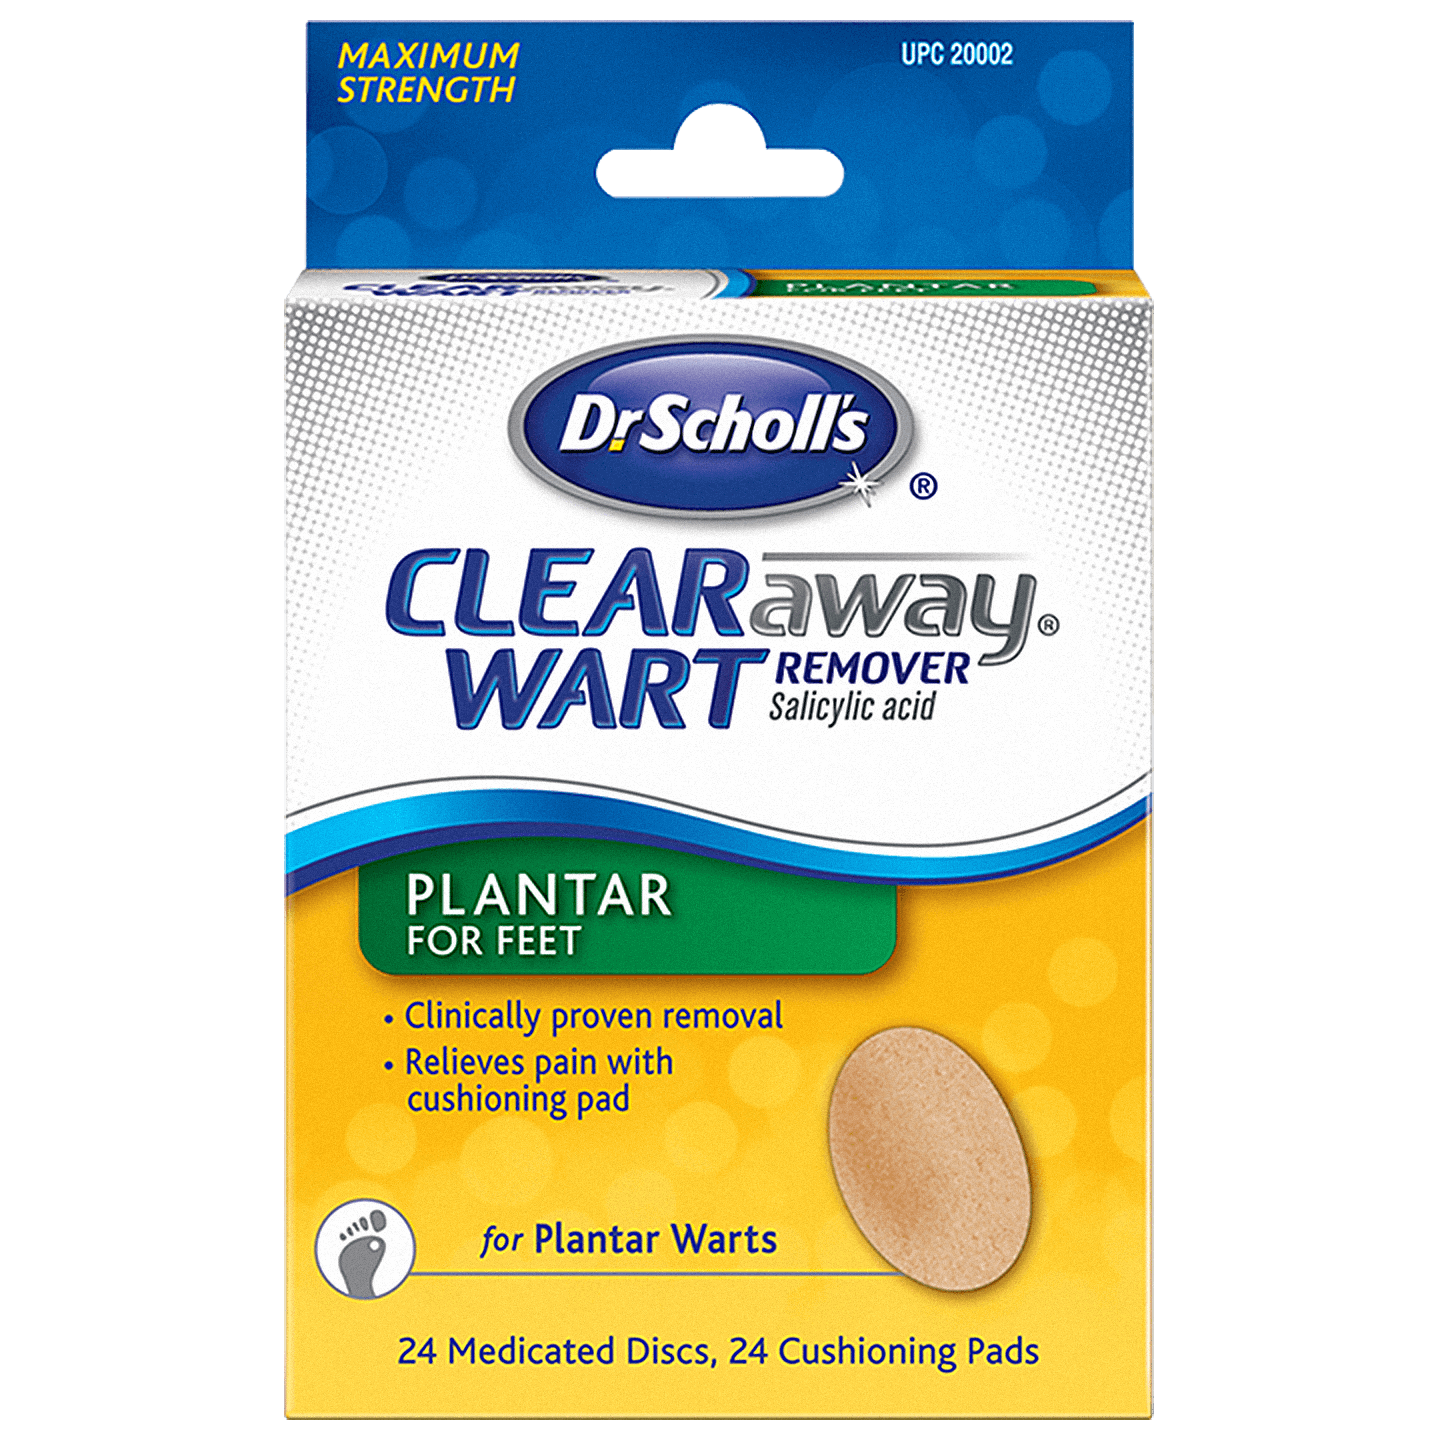 Dr Scholl's Clear Wart Remover Salicylic Acid front